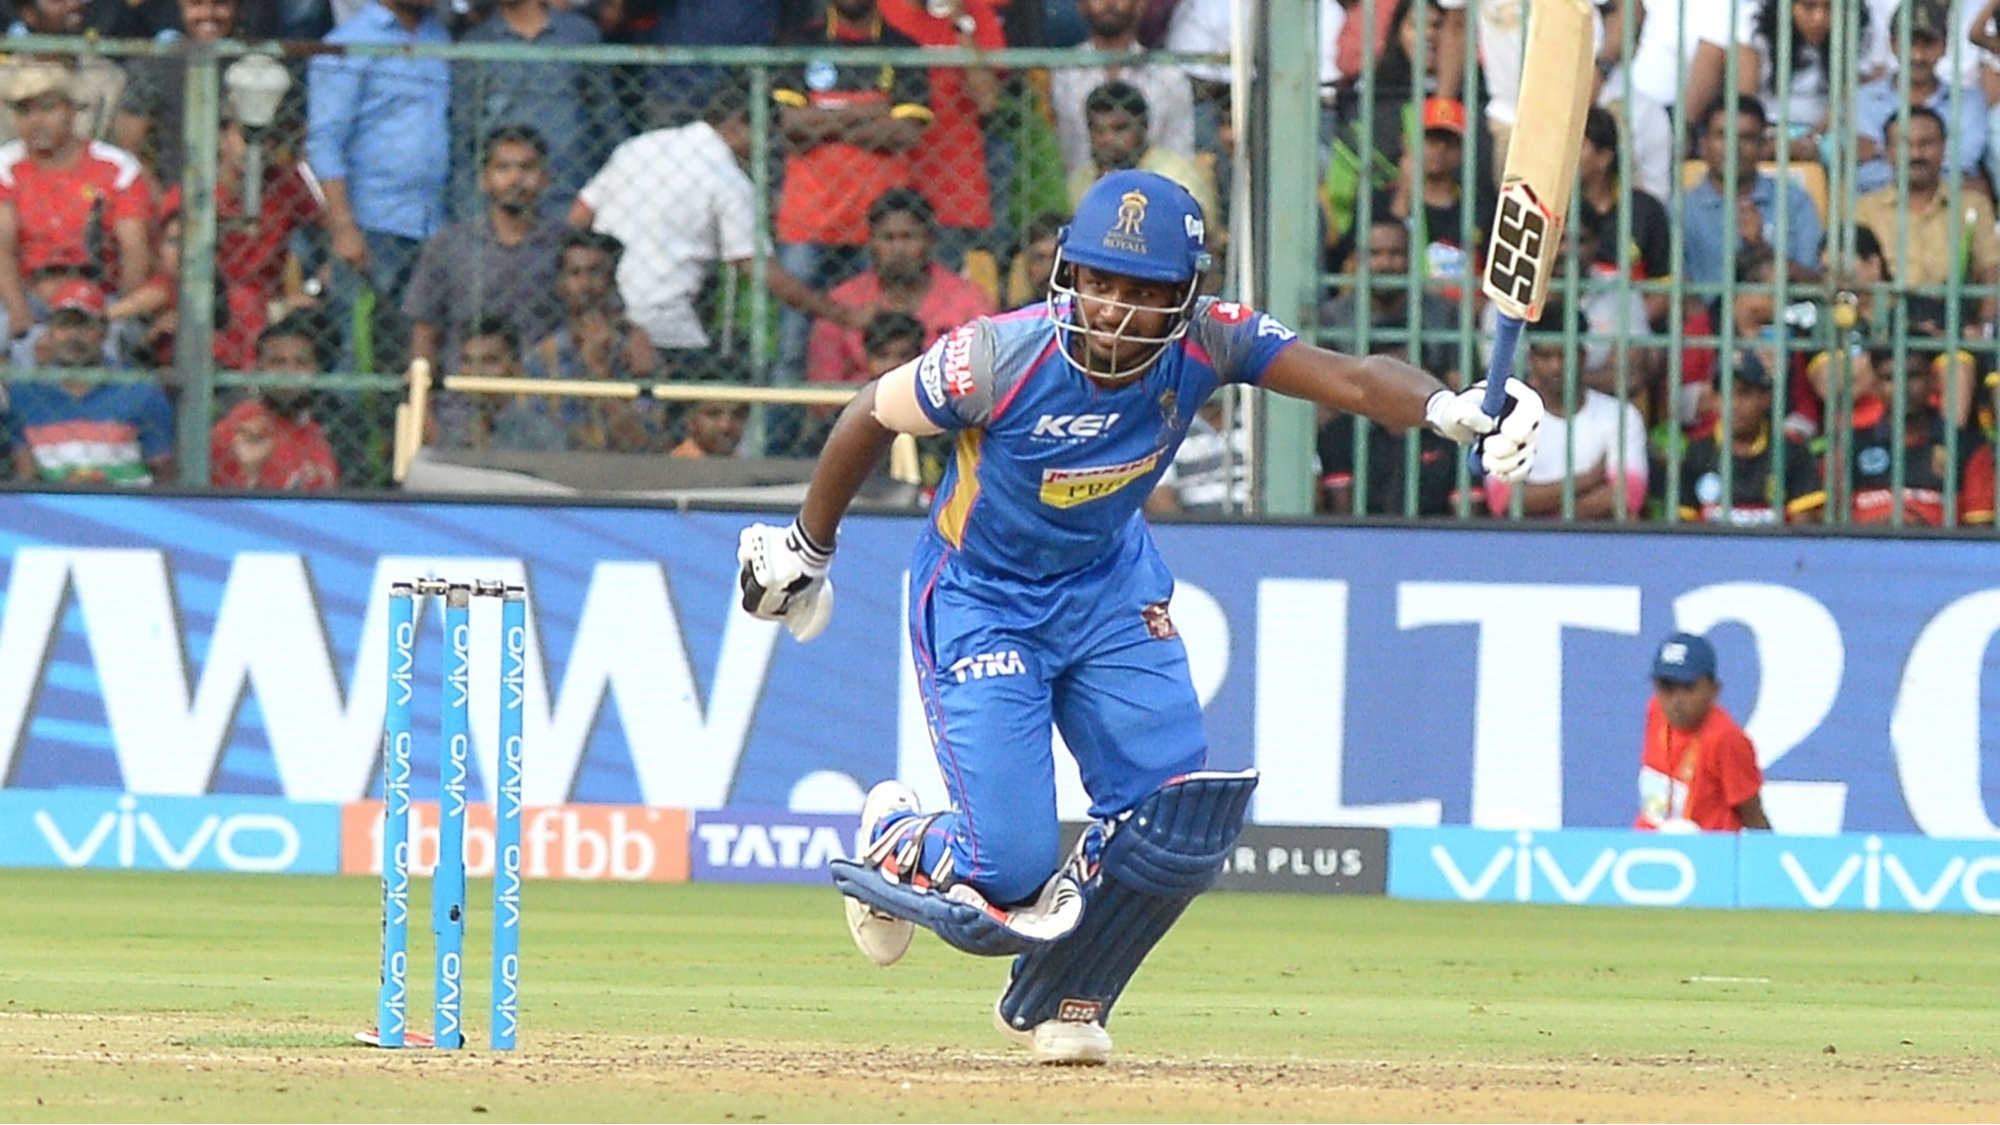 IPL 2018: Sanju Samson terms IPL as a great platform to express oneself